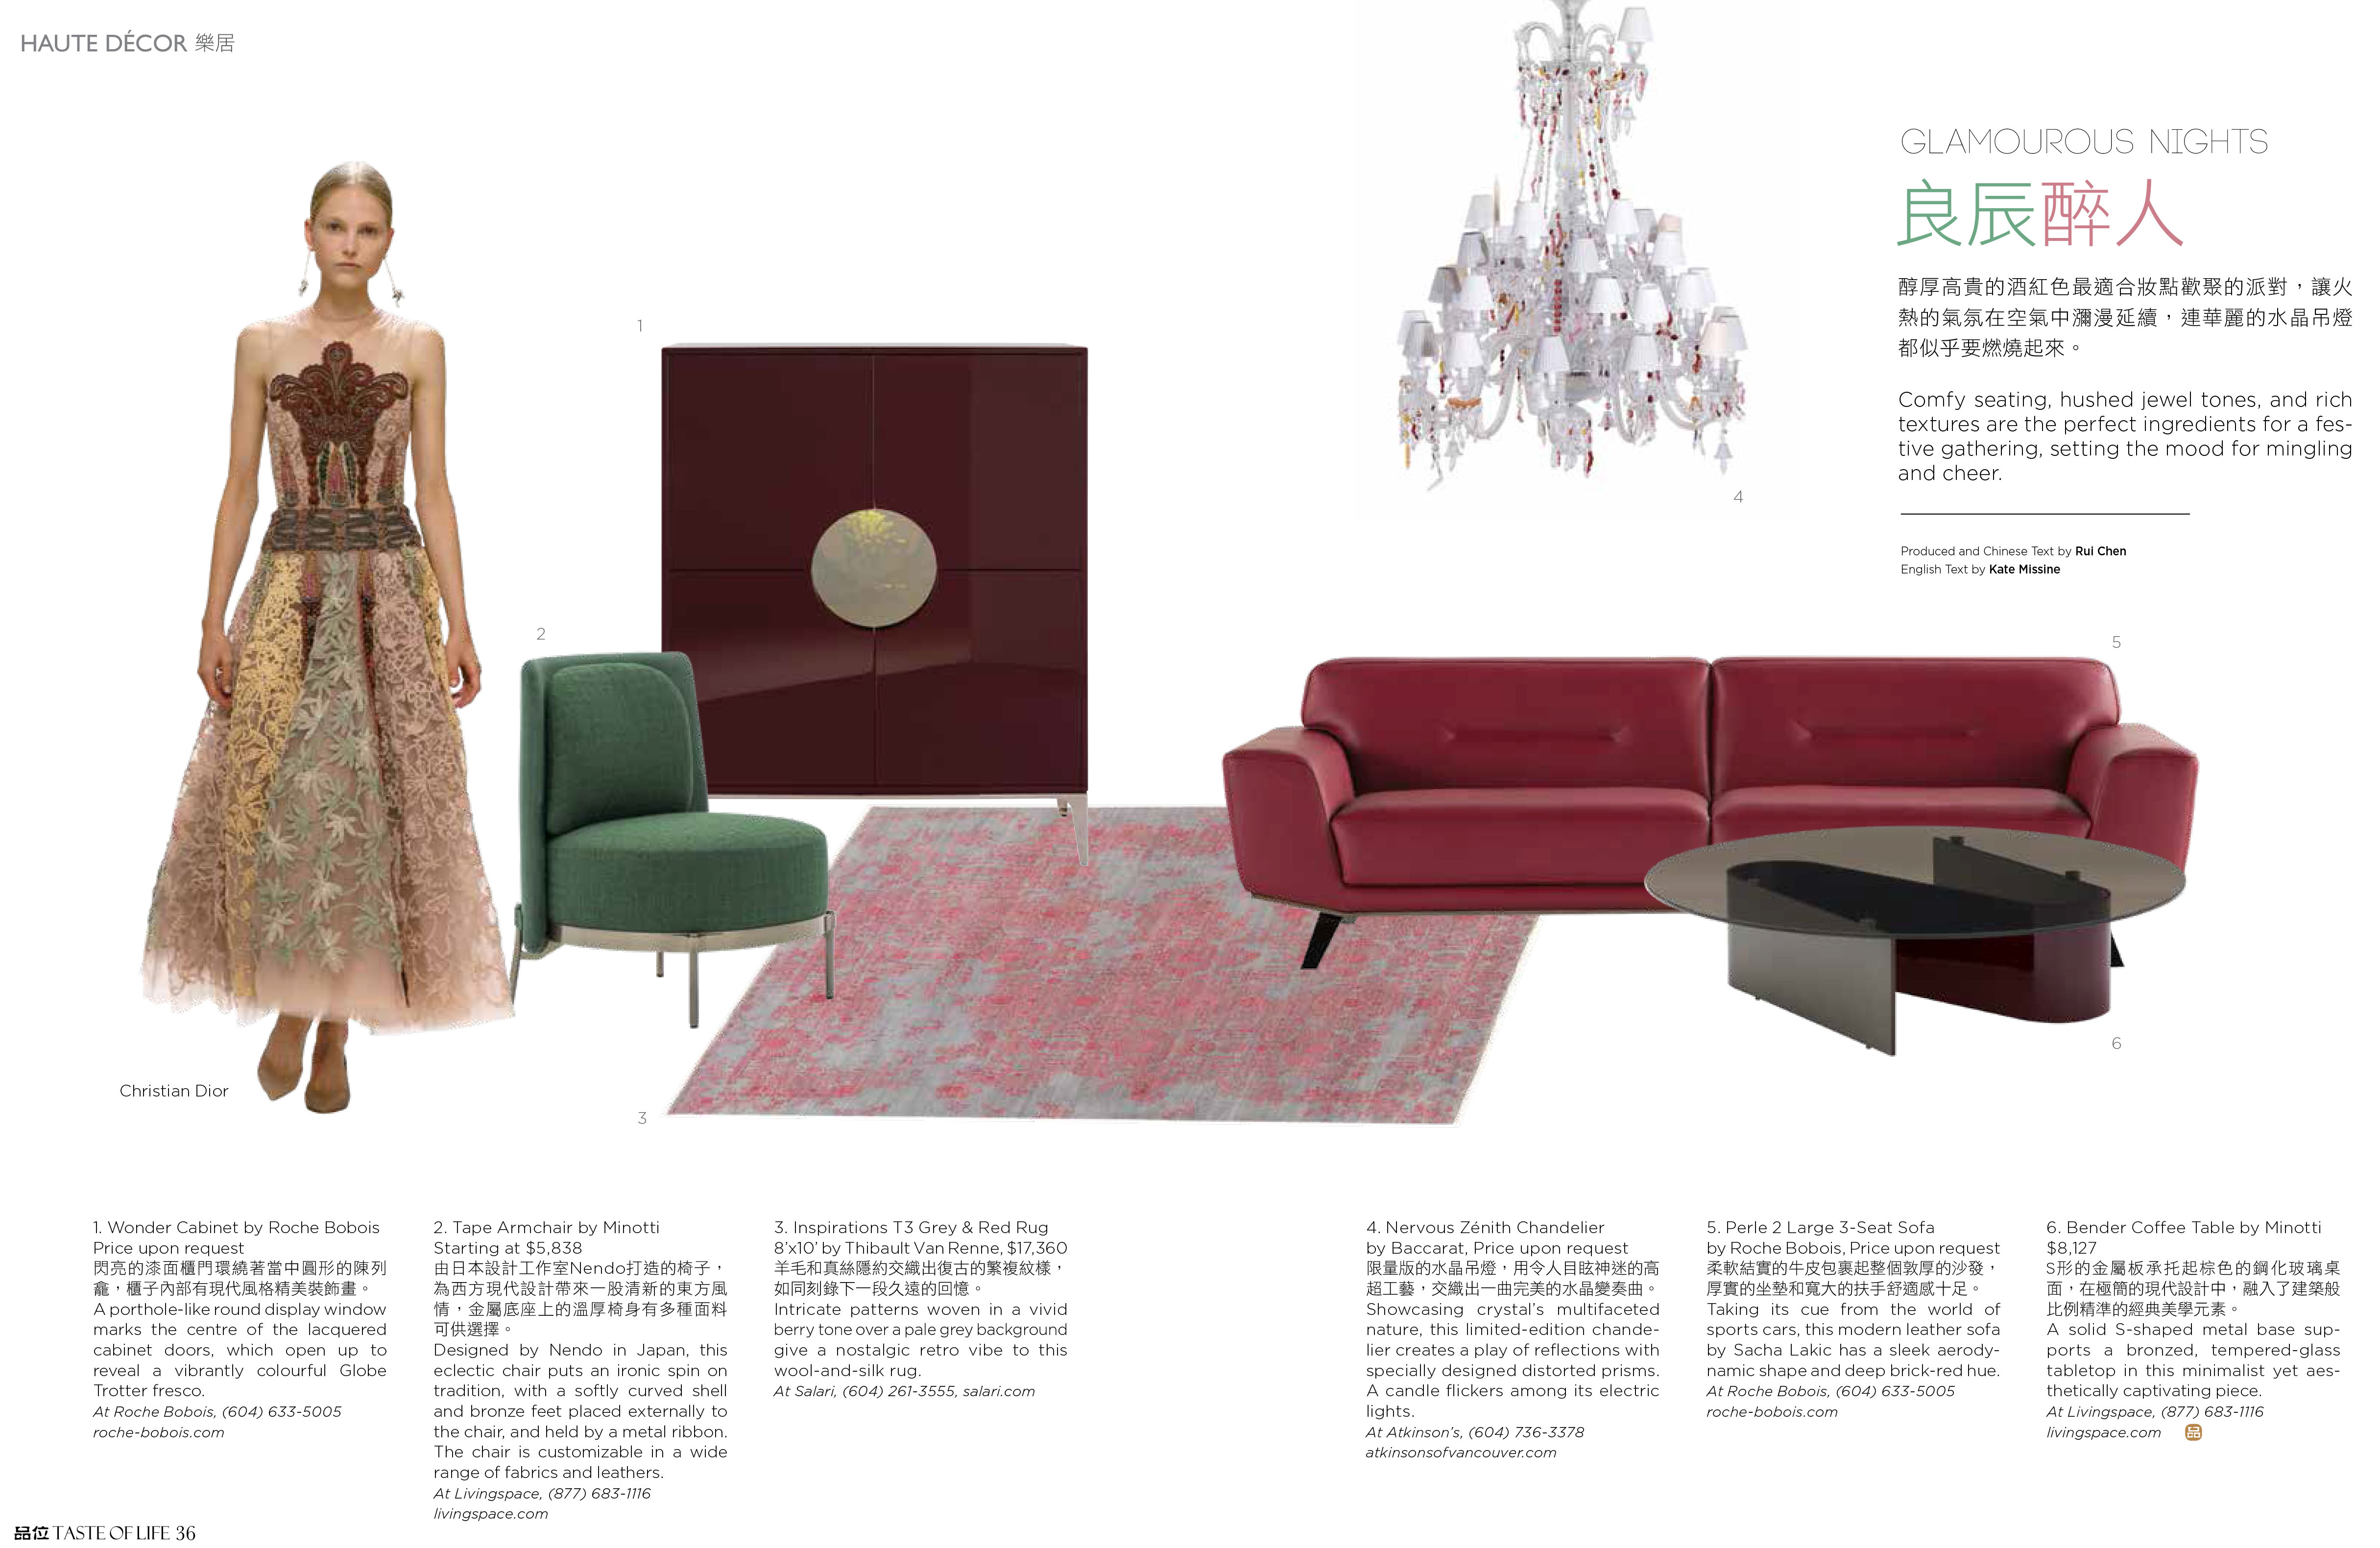 Carpet featured – Inspiration T3 Grey and Red by Thibault Van Renne in 8'x10′